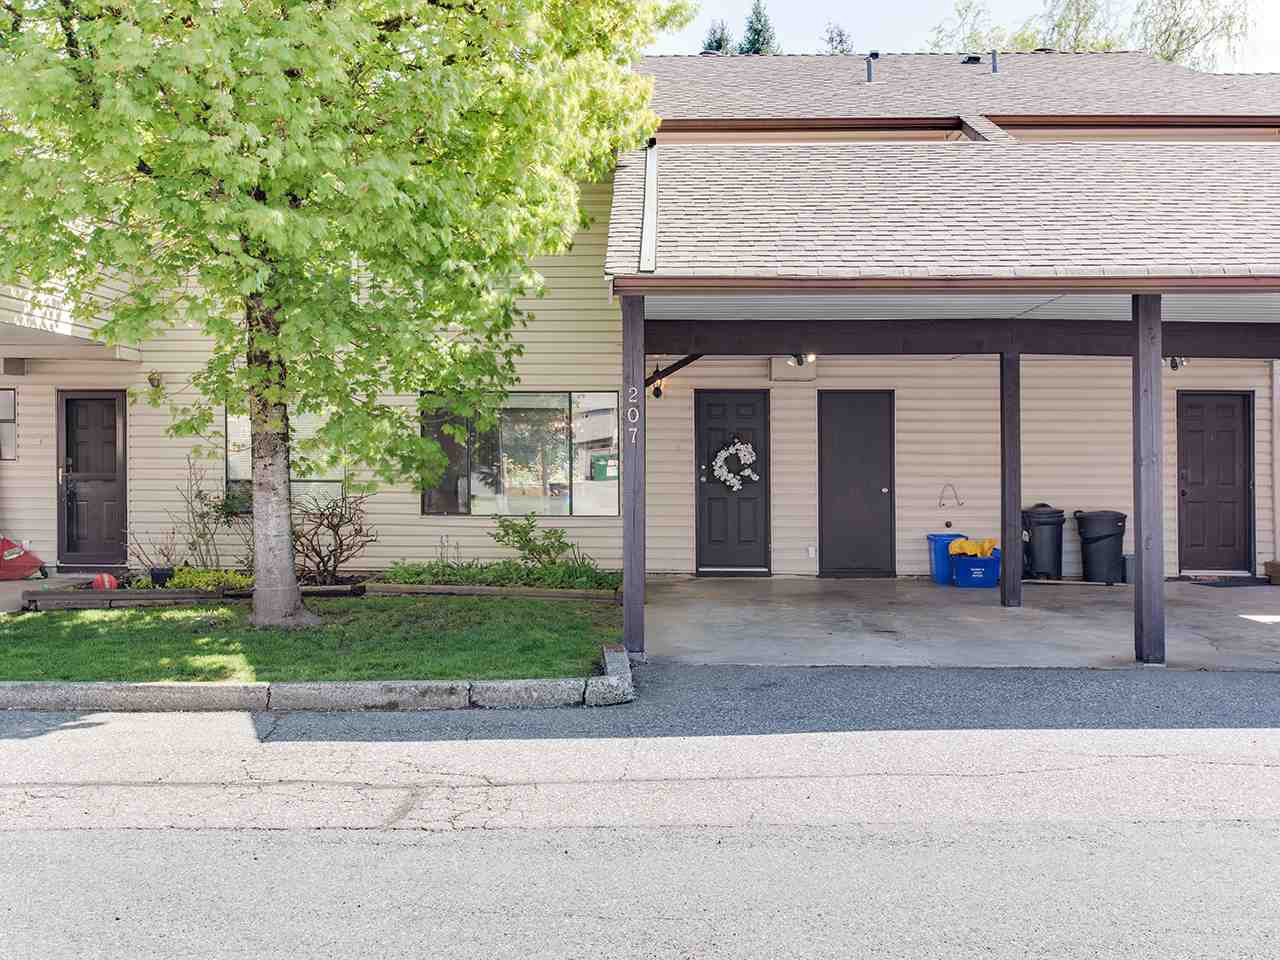 """Main Photo: 207 27411 28 Avenue in Langley: Aldergrove Langley Townhouse for sale in """"Alderview"""" : MLS®# R2361935"""